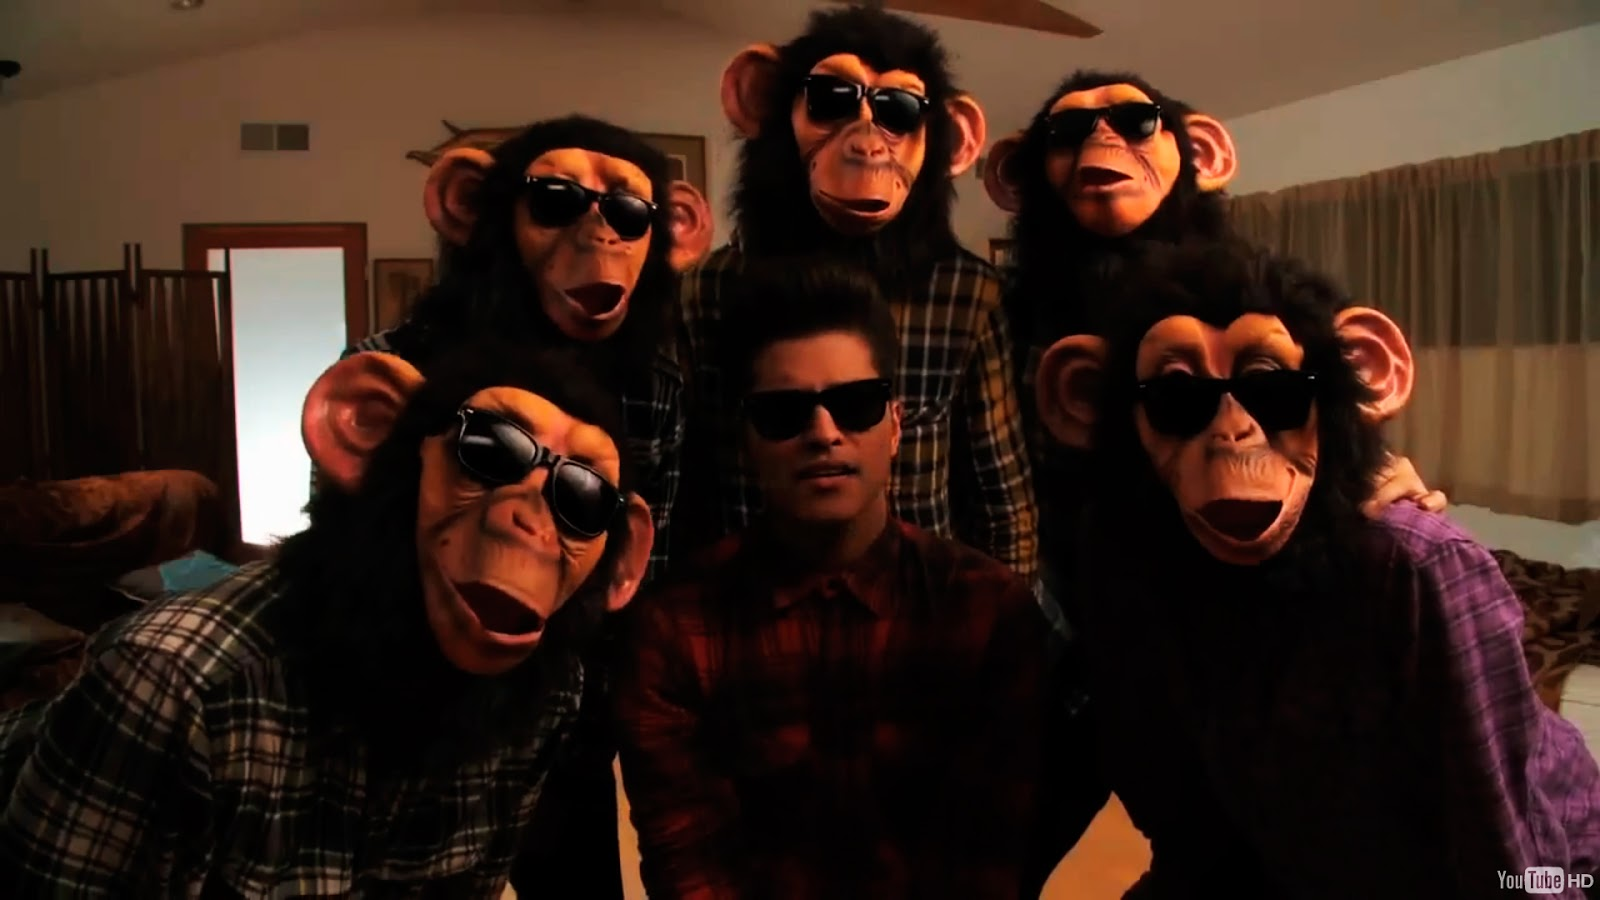 Bruno Mars The Lazy Song Youtube Music Videos